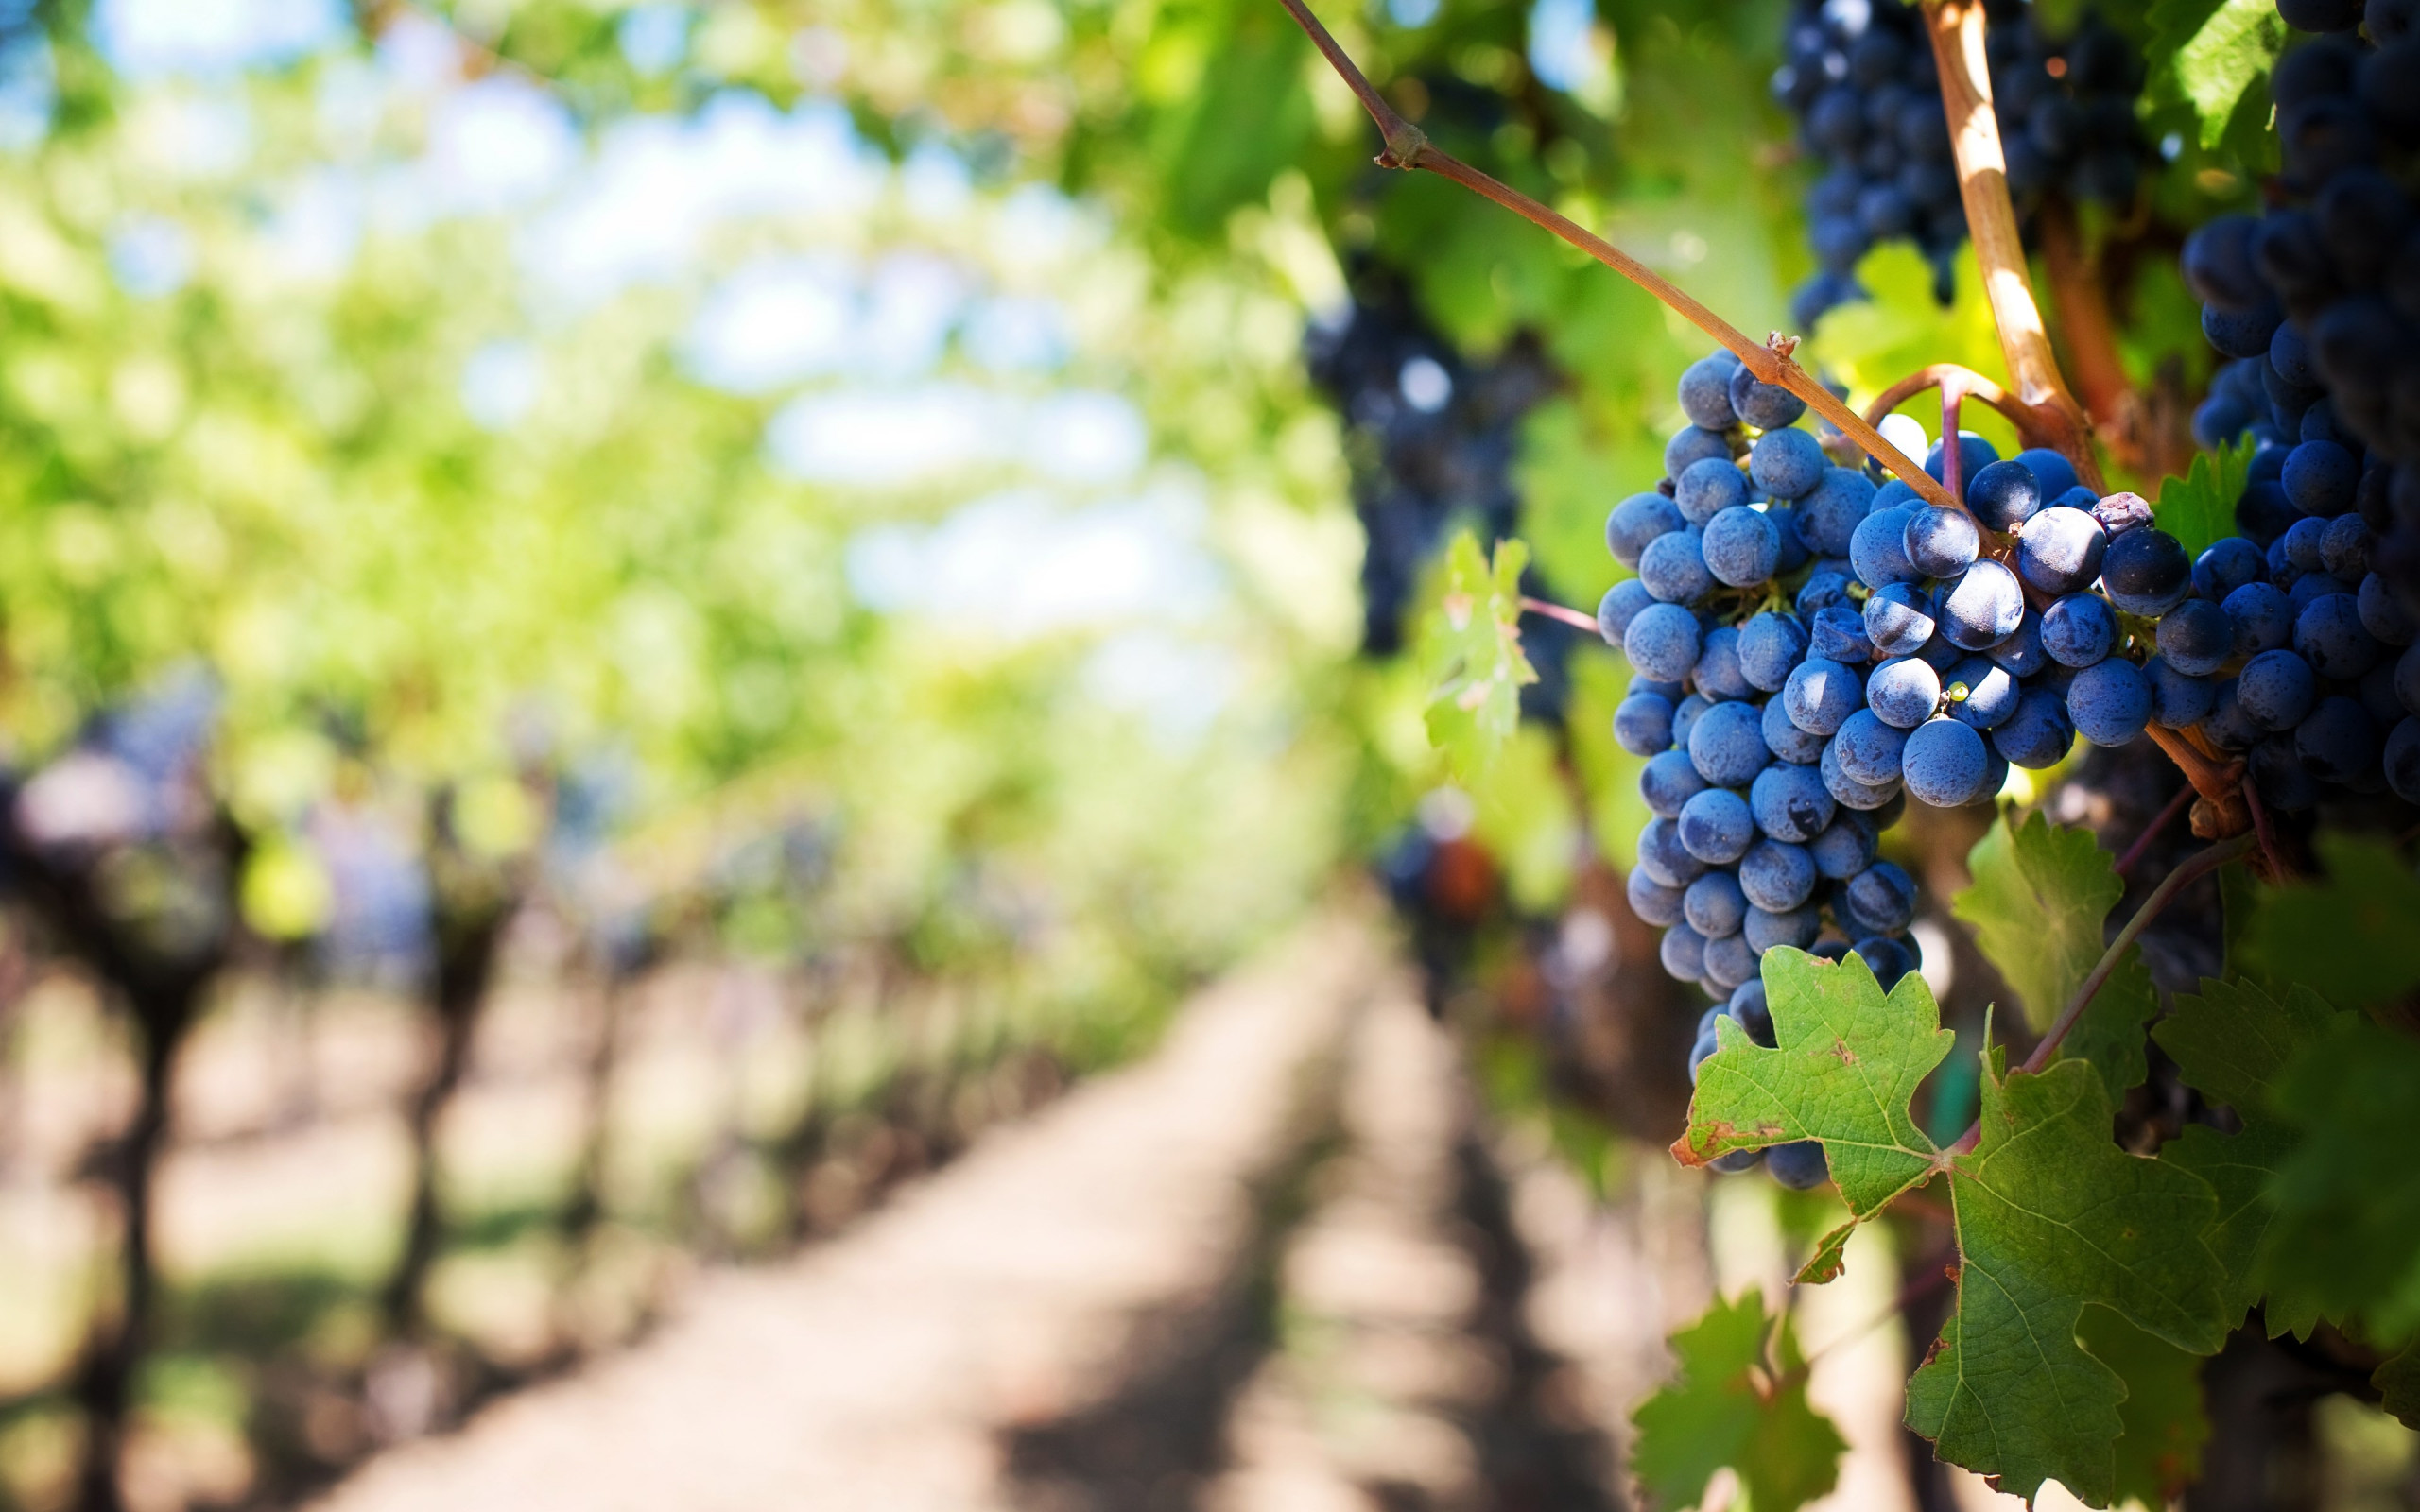 Grapes in vineyard wallpaper 2560x1600